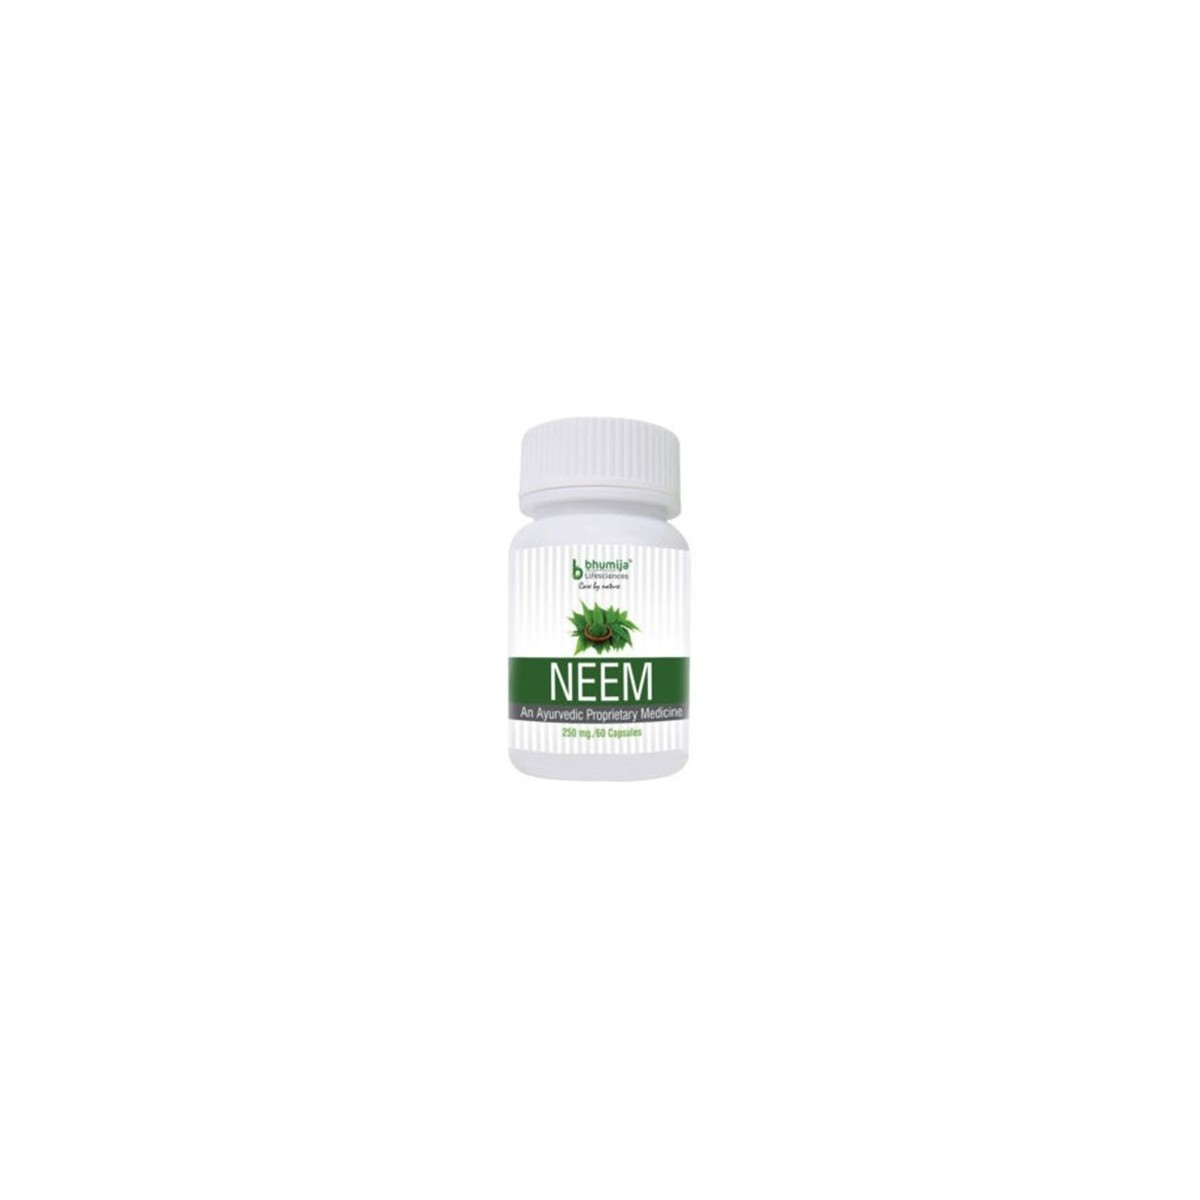 Bhumija Lifesciences Neem Capsles 60